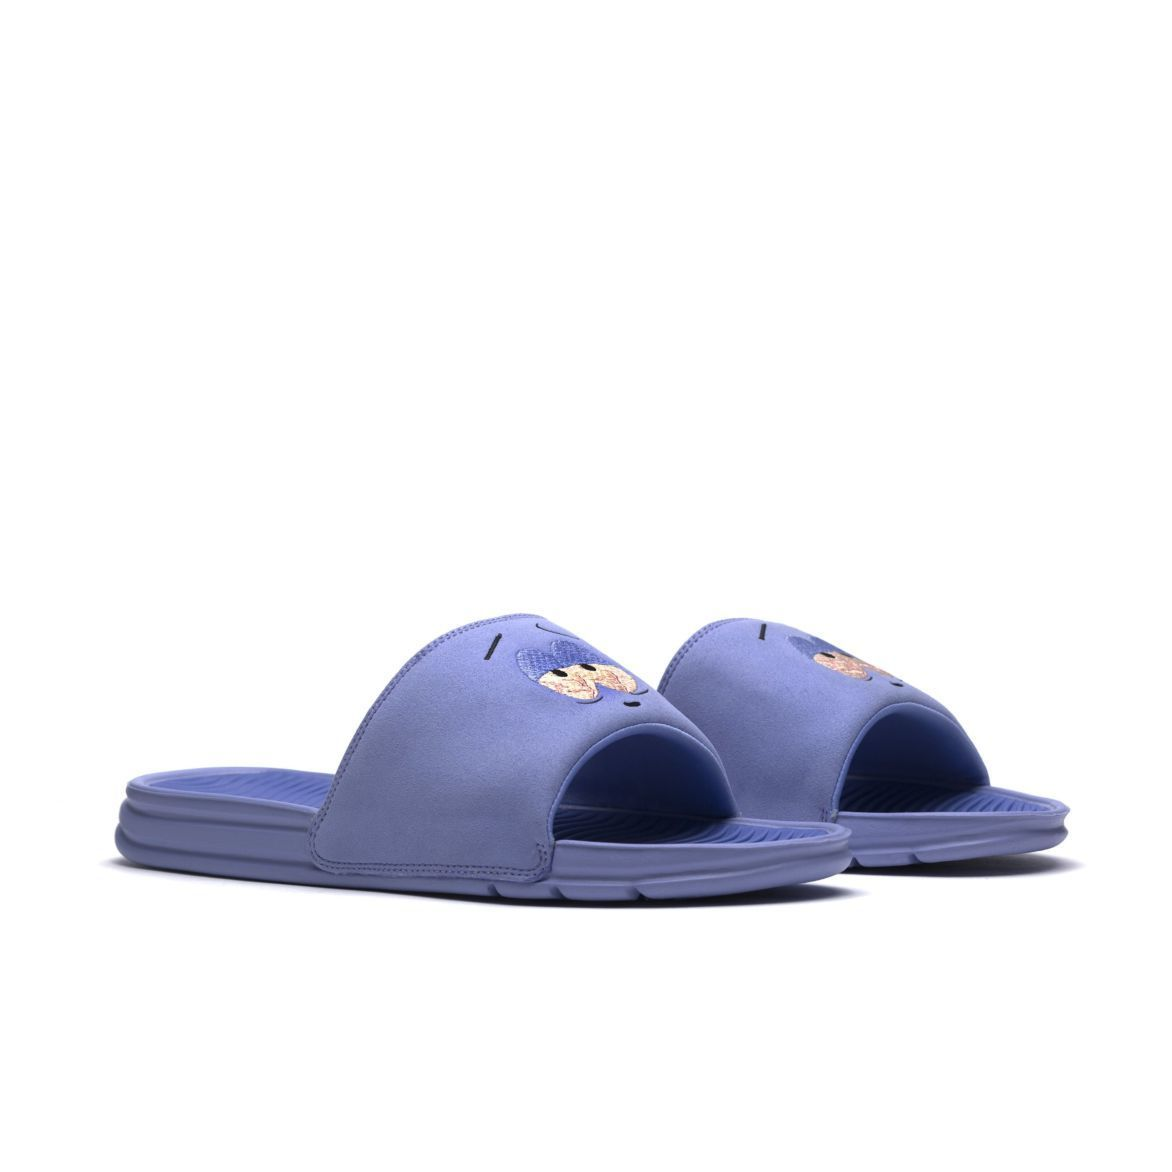 HUF×SOUTH PARK SP TOWELIE SLIDES PURPLE